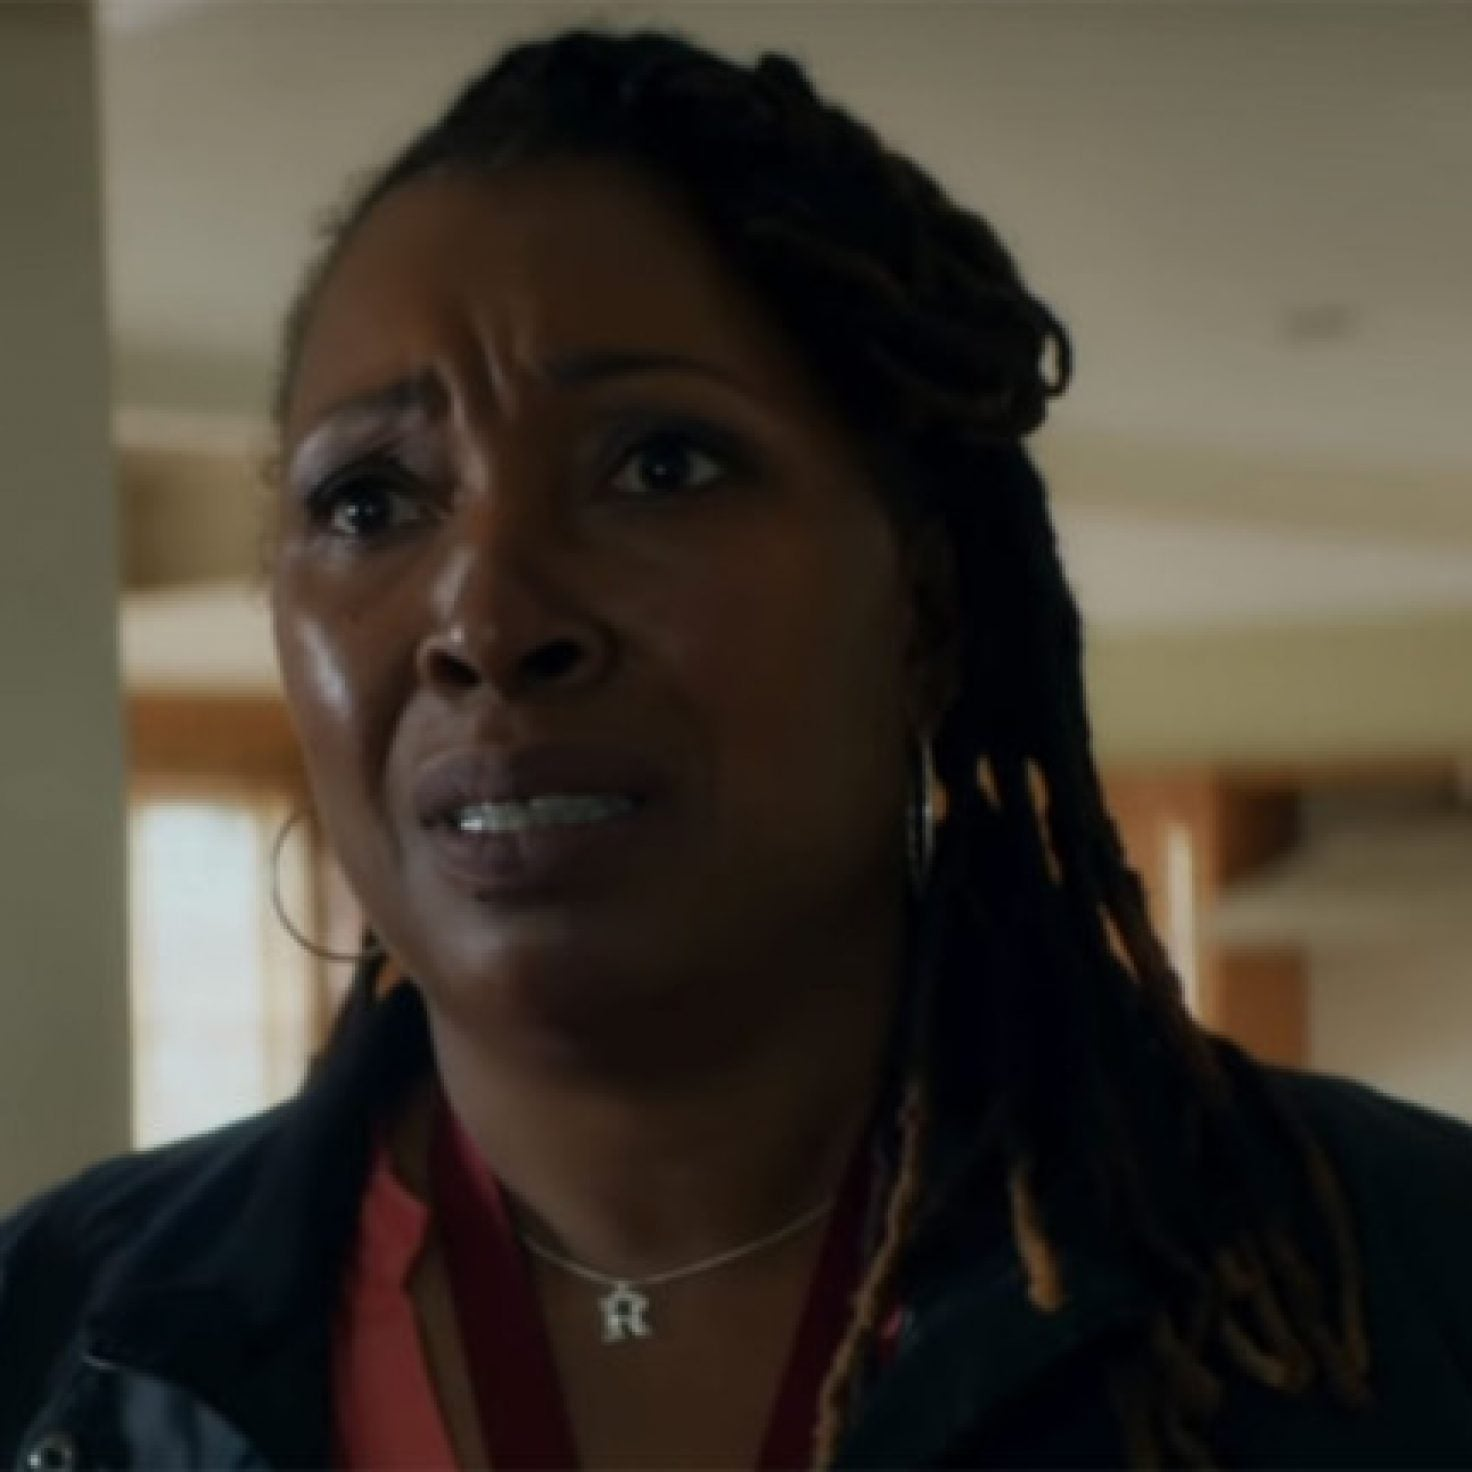 'Dr. Who' Is Now A Black Woman (And We're Losing Our Minds)